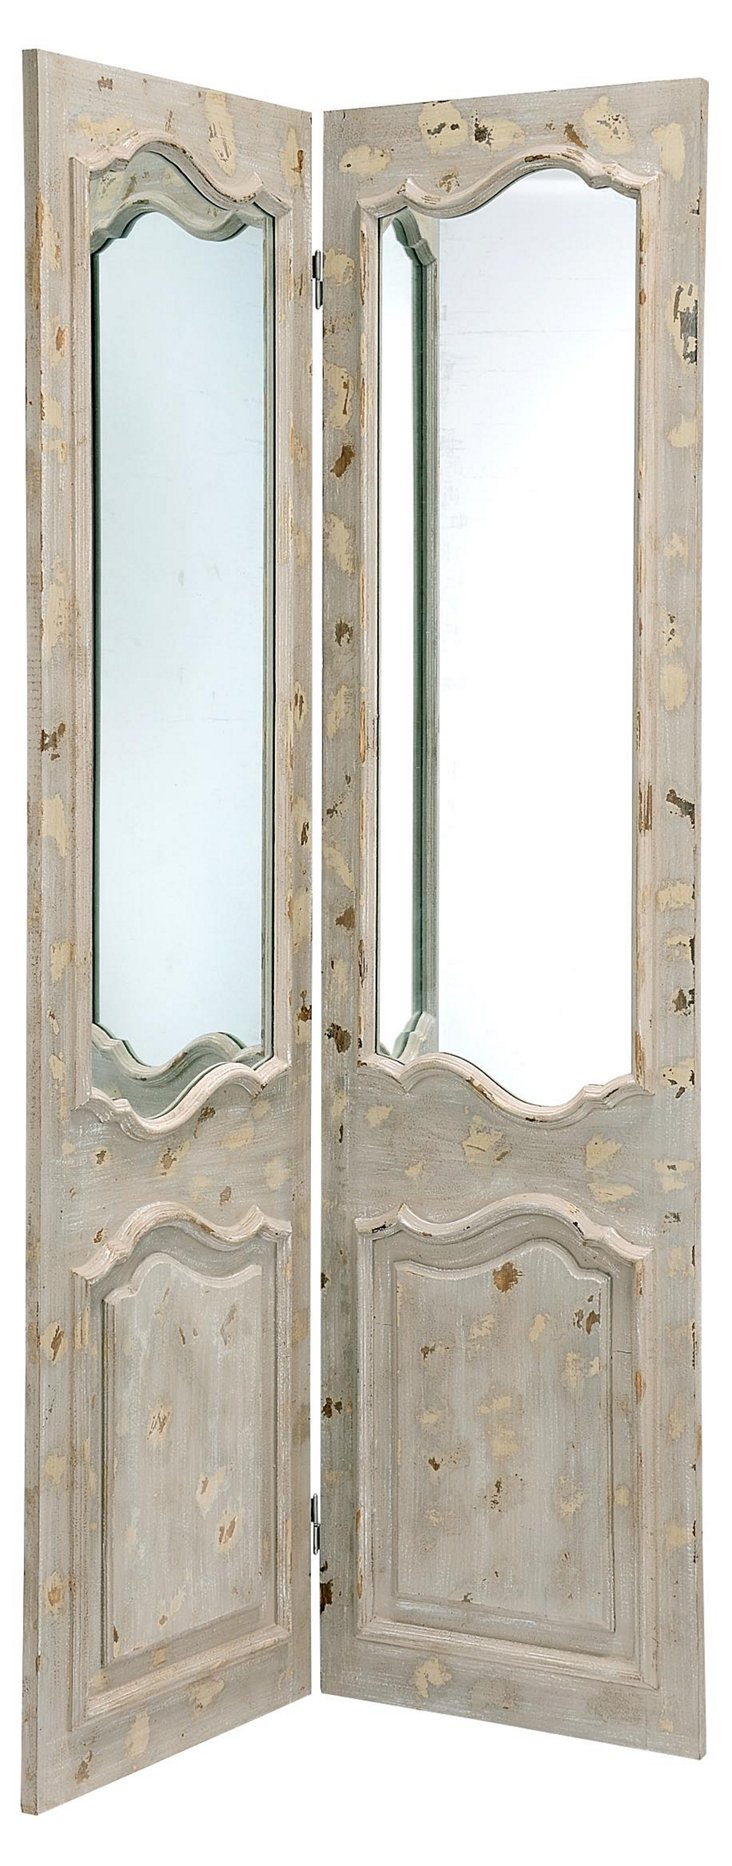 French Door Mirror Screen, Distressed White